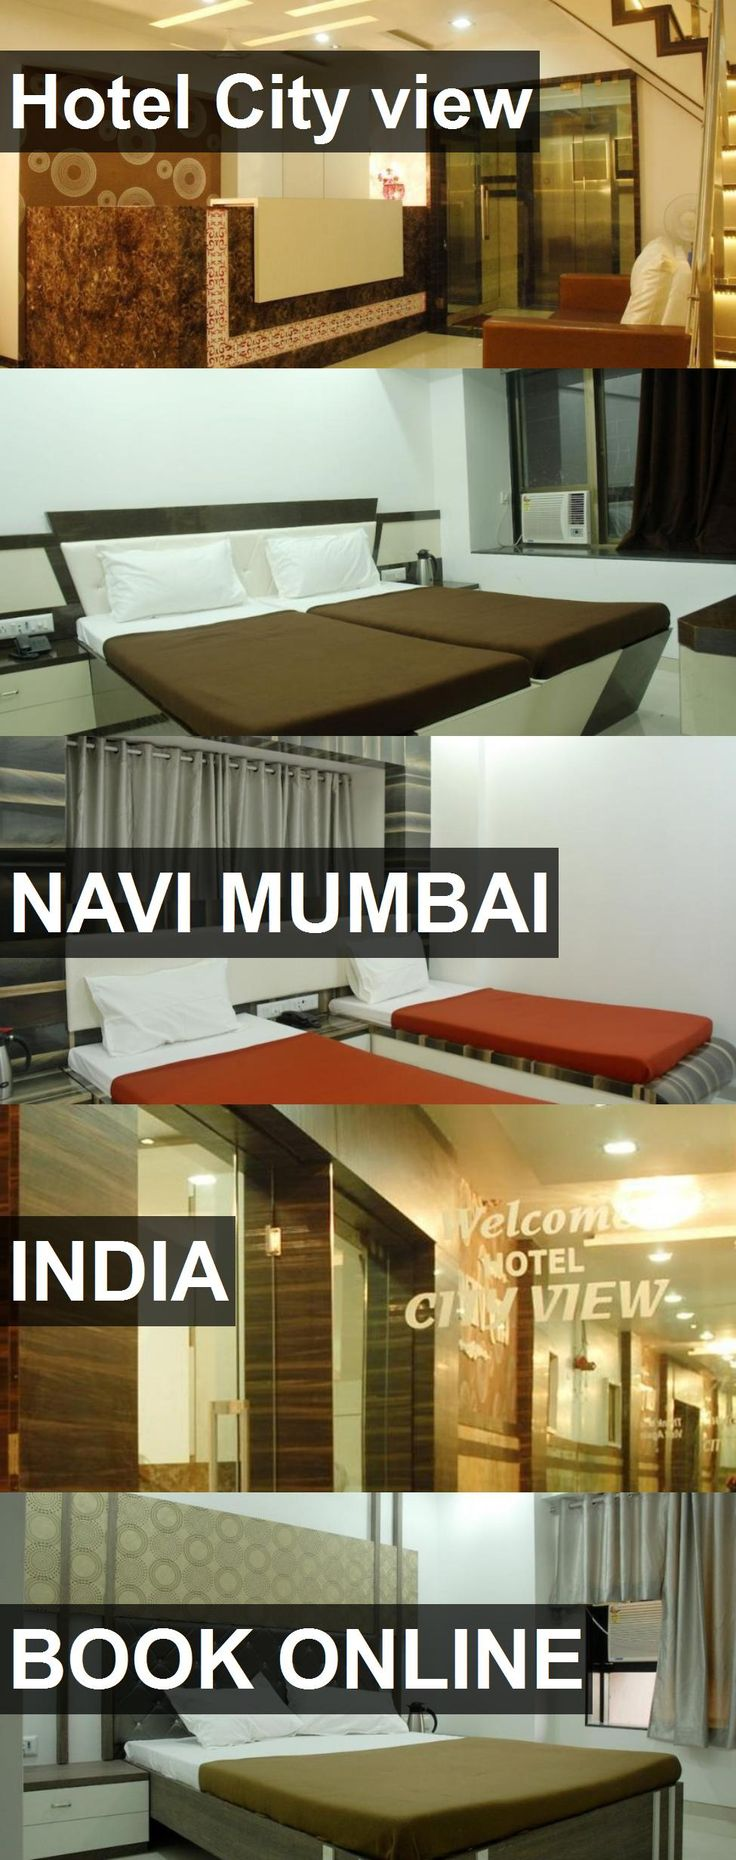 Hotel City view in Navi Mumbai, India. For more information, photos, reviews and best prices please follow the link. #India #NaviMumbai #travel #vacation #hotel